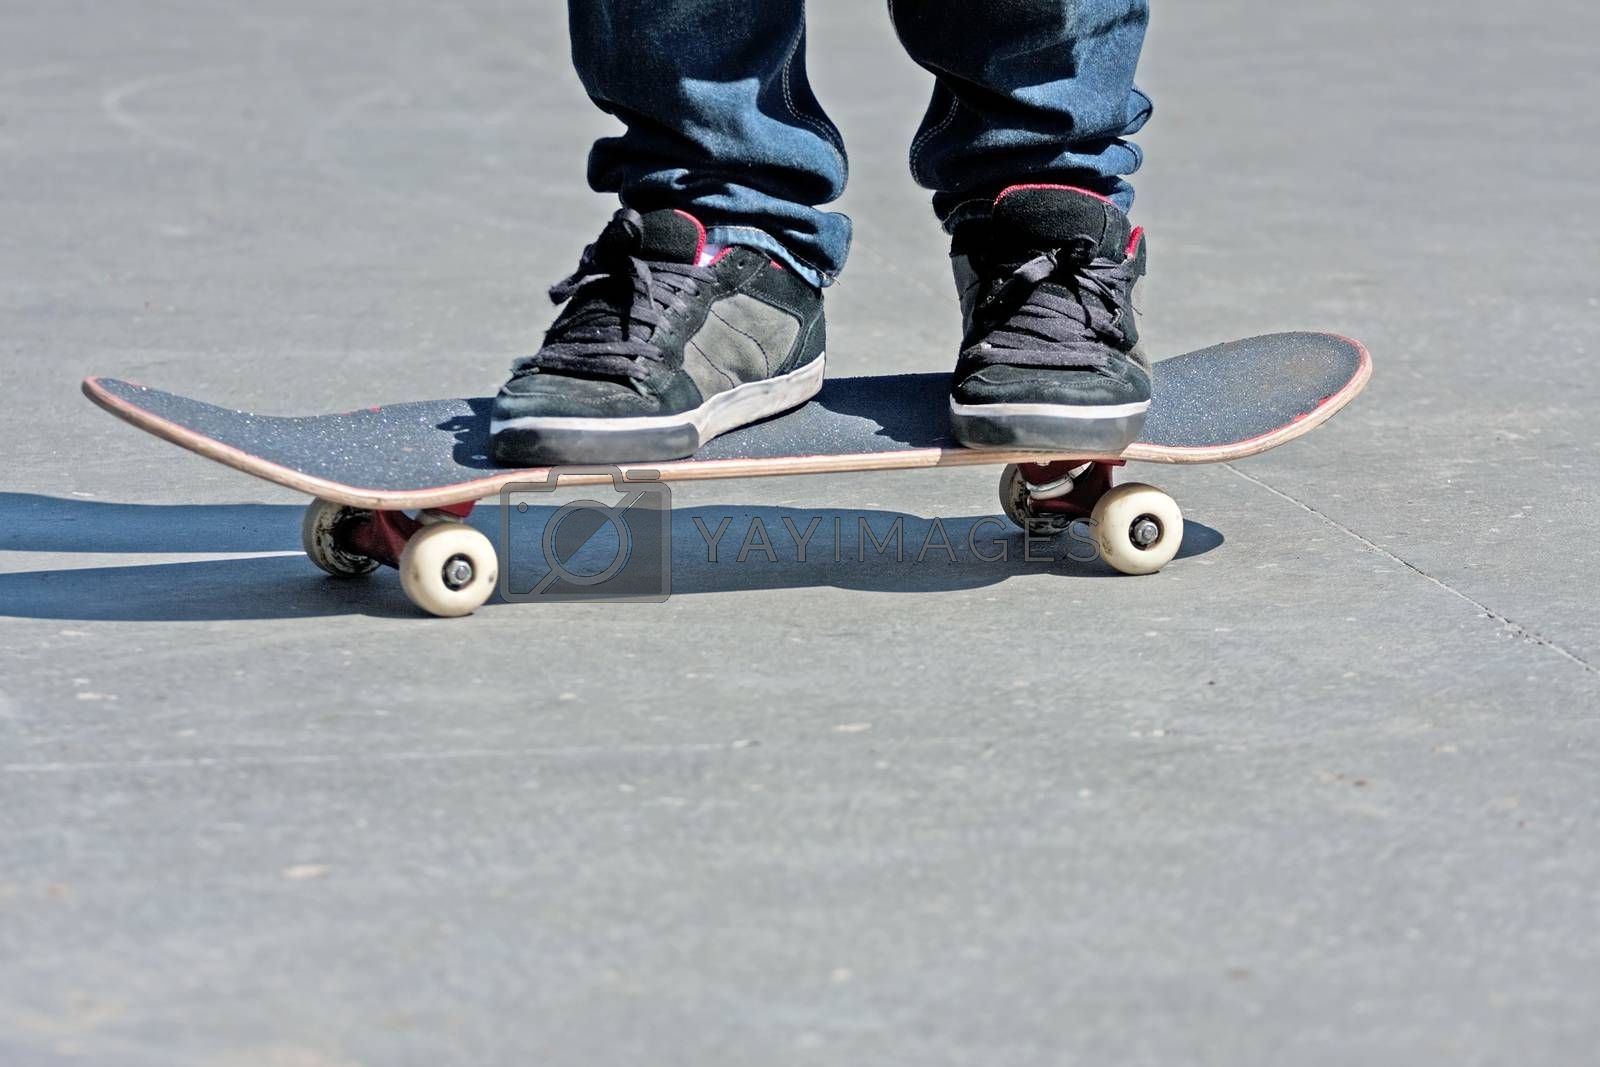 Royalty free image of Skateboarders Feet Close Up by graficallyminded